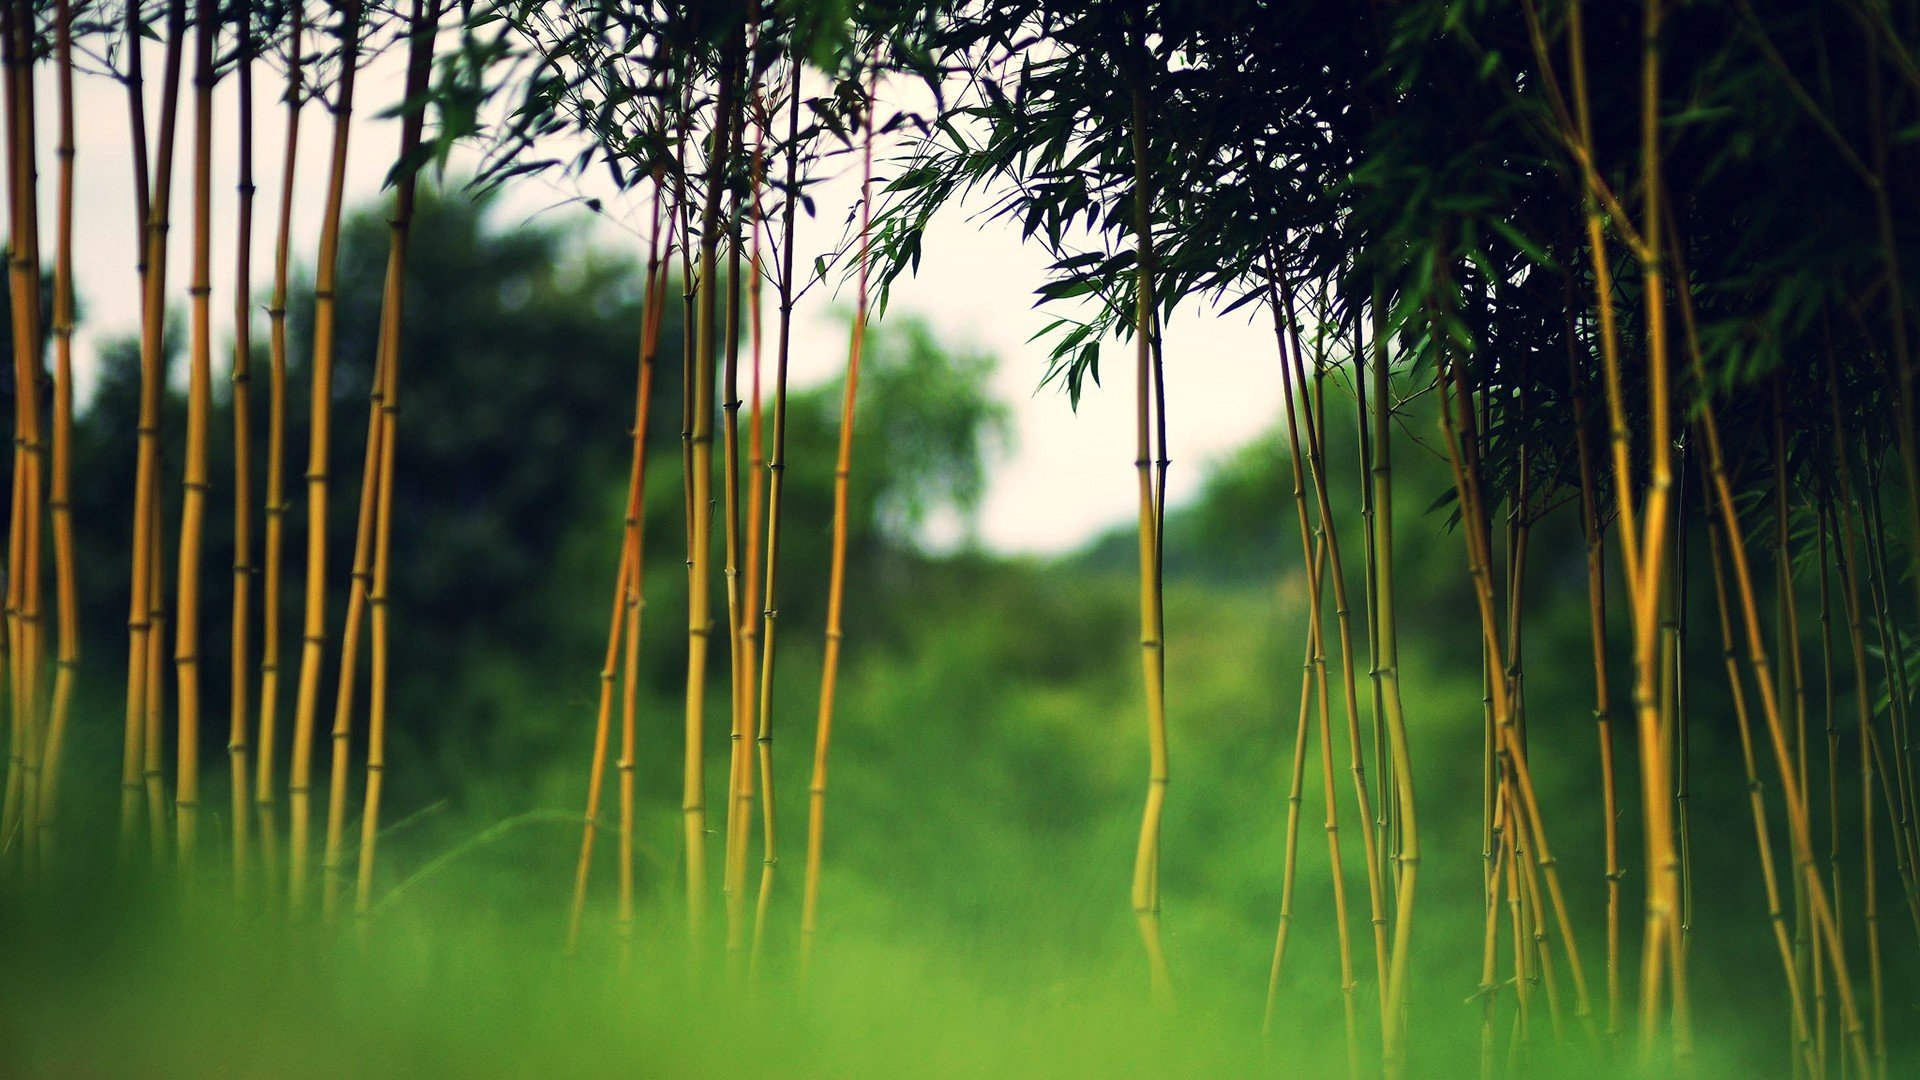 Awesome Bamboo free background ID:246807 for hd 1920x1080 desktop